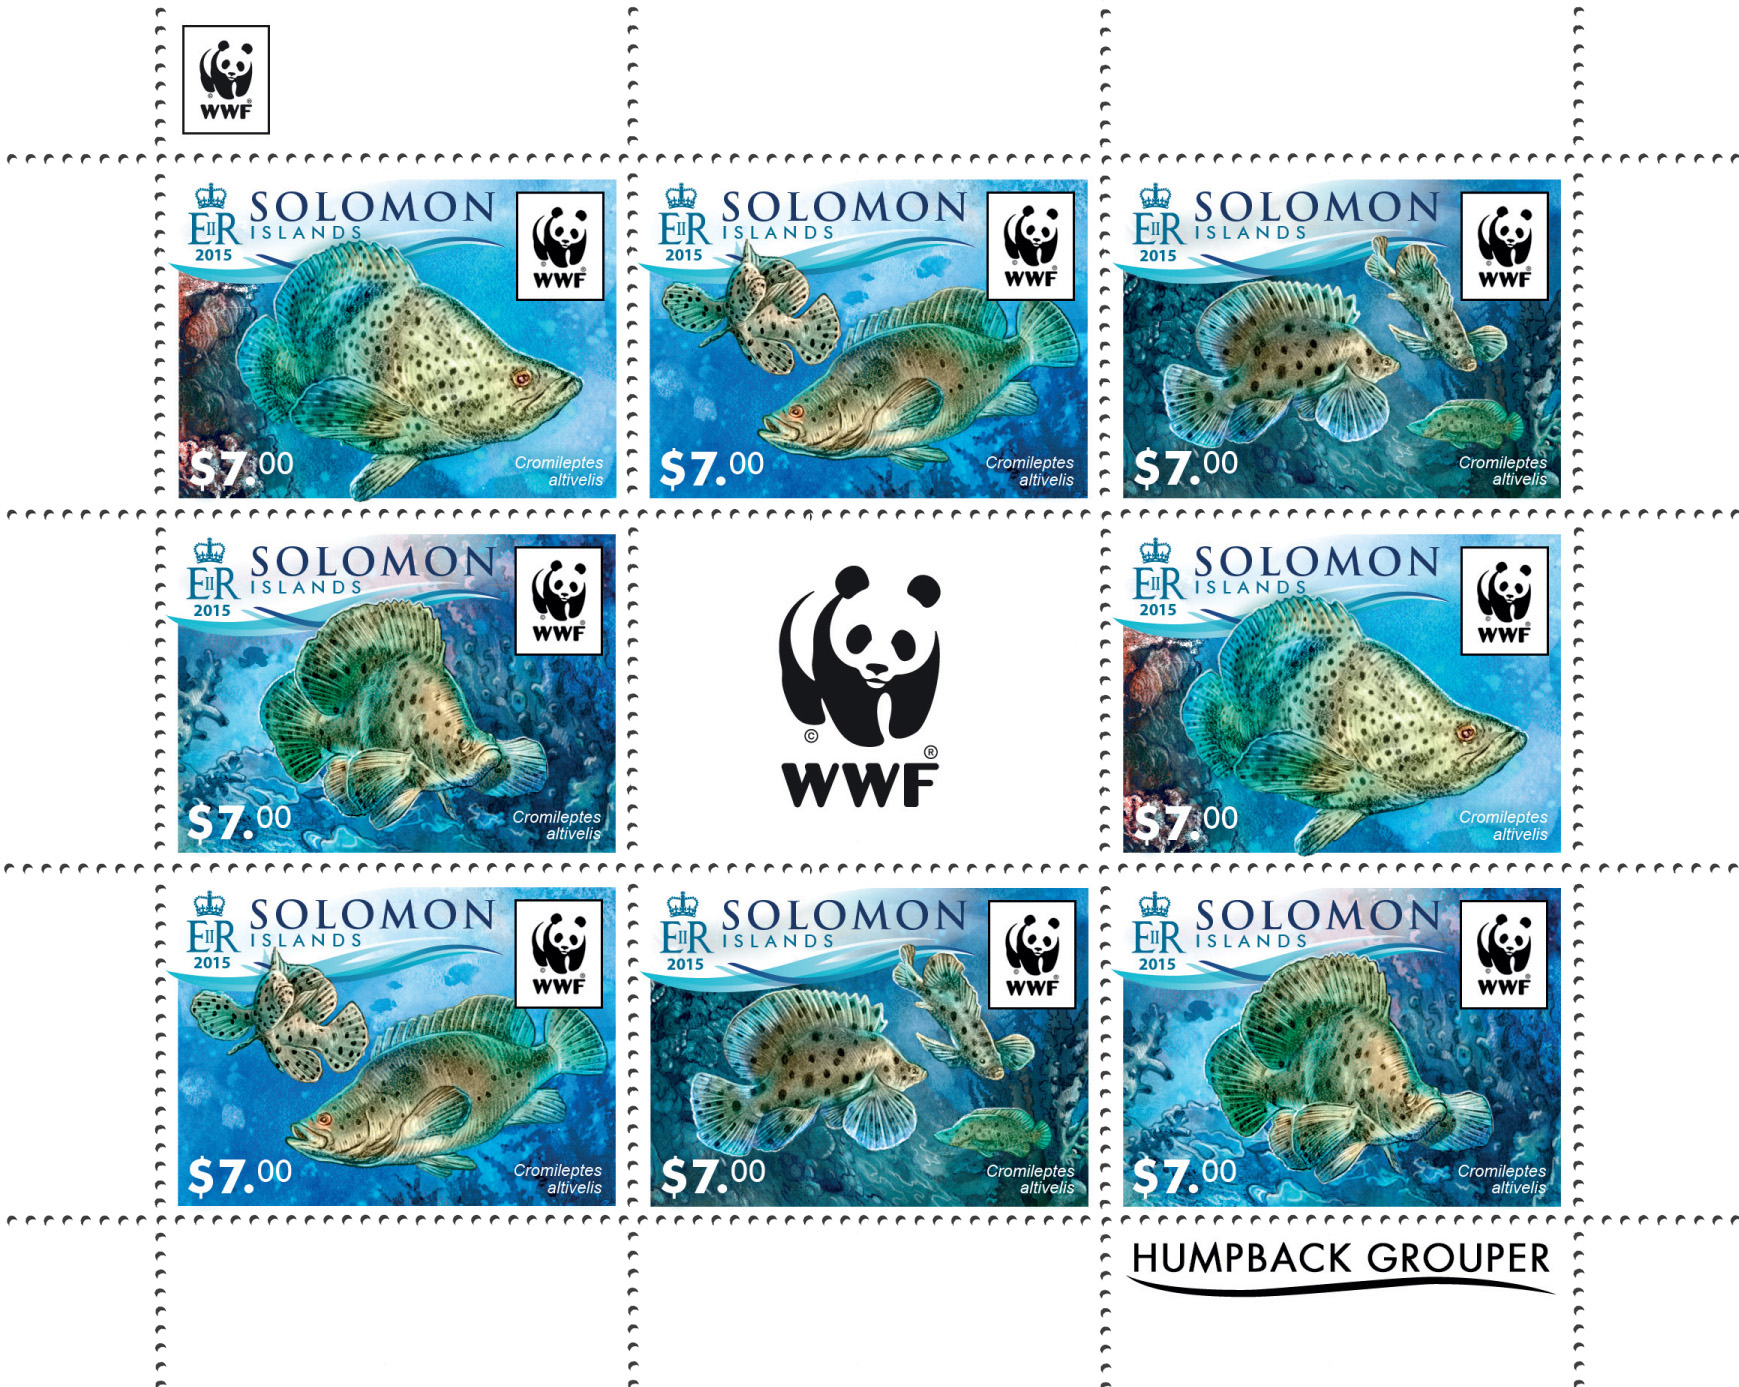 WWF – Fish (2 sets) - Issue of Solomon islands postage stamps